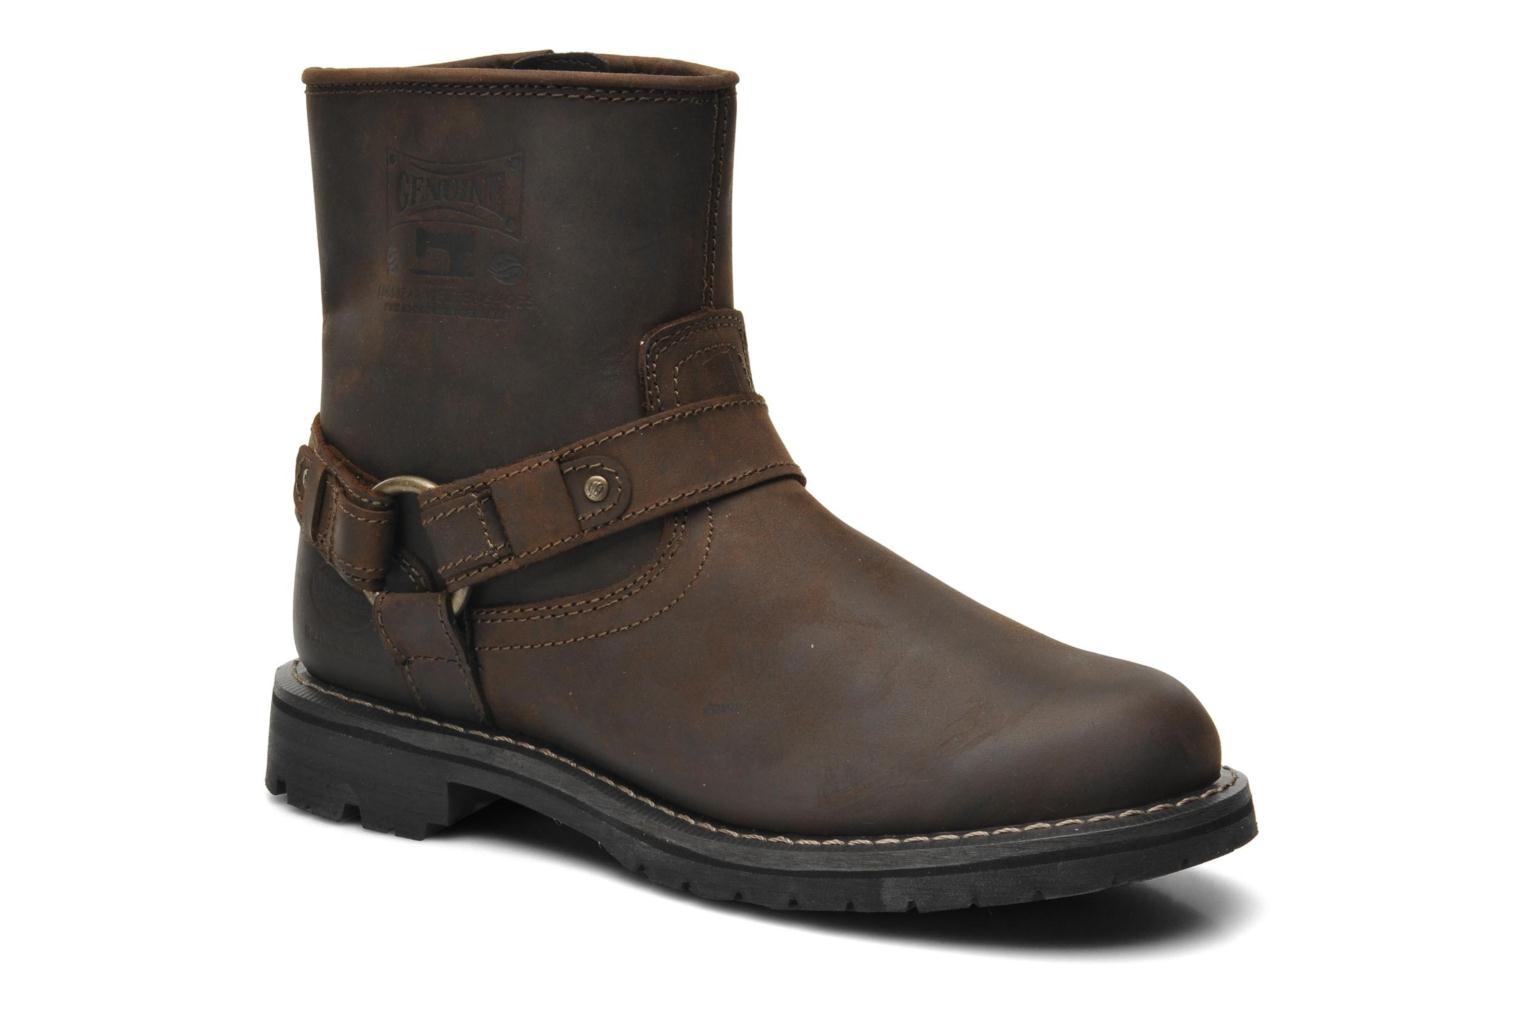 Bottines et boots Dockers Jameson Marron vue détail/paire